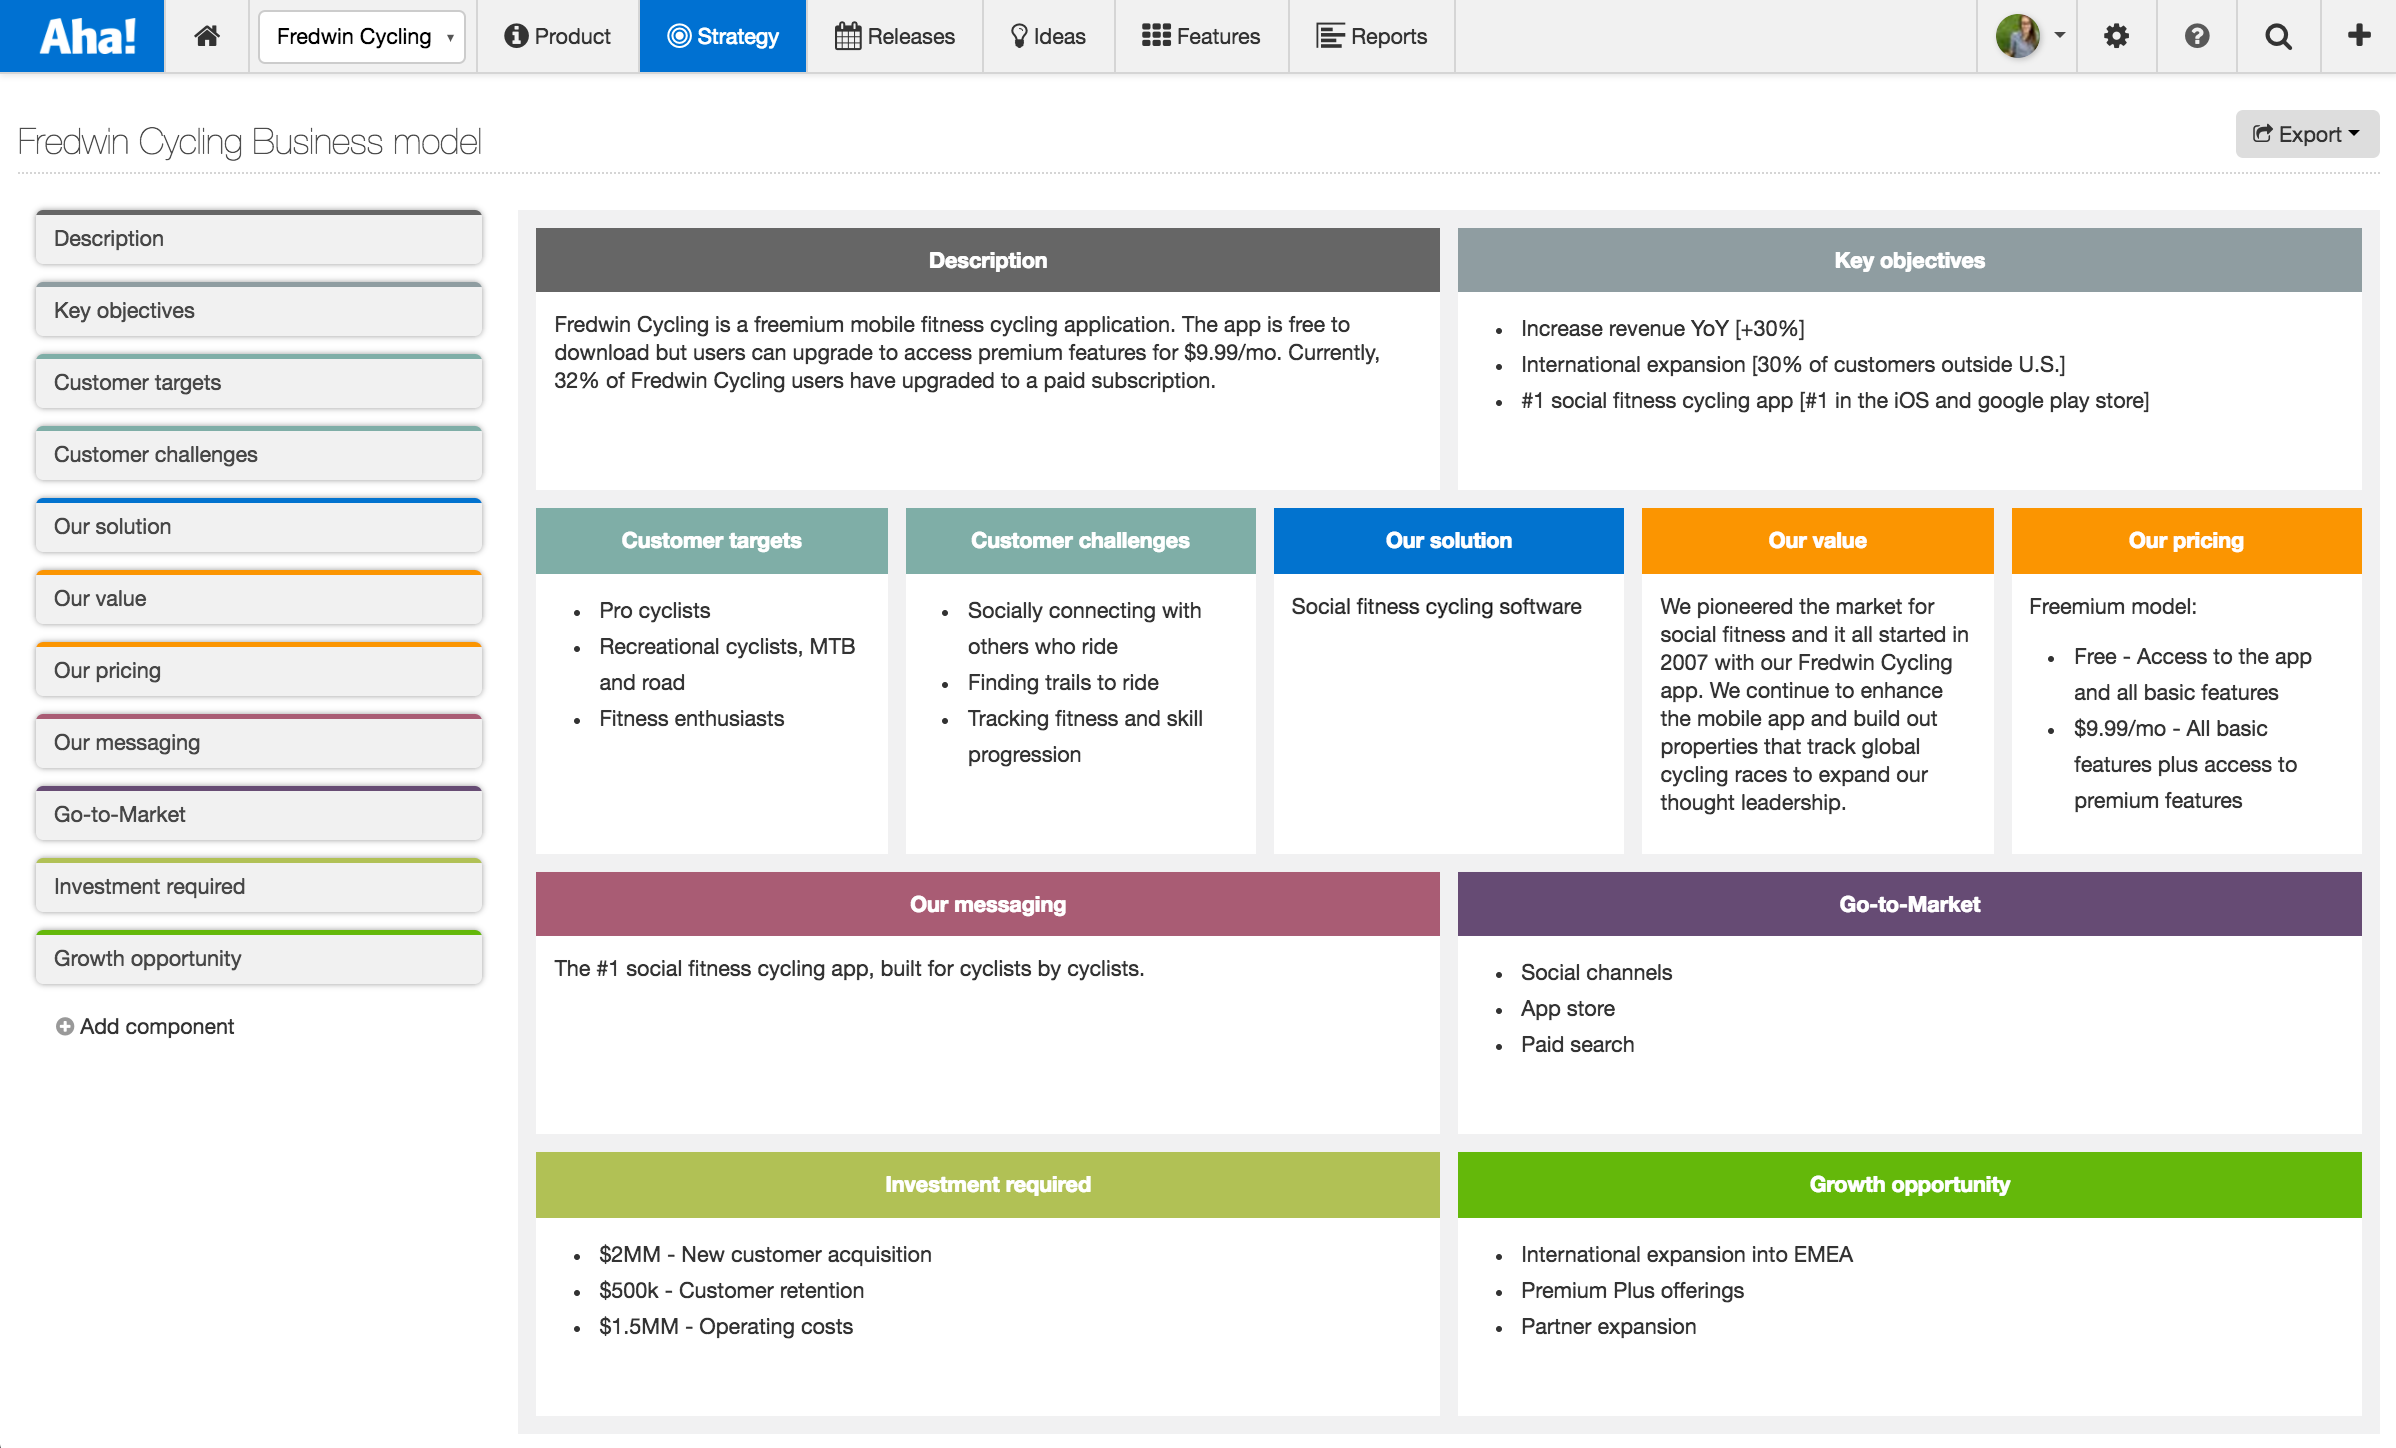 the feature scorecard is a great way to turn your business case details into actionable prioritization decisions